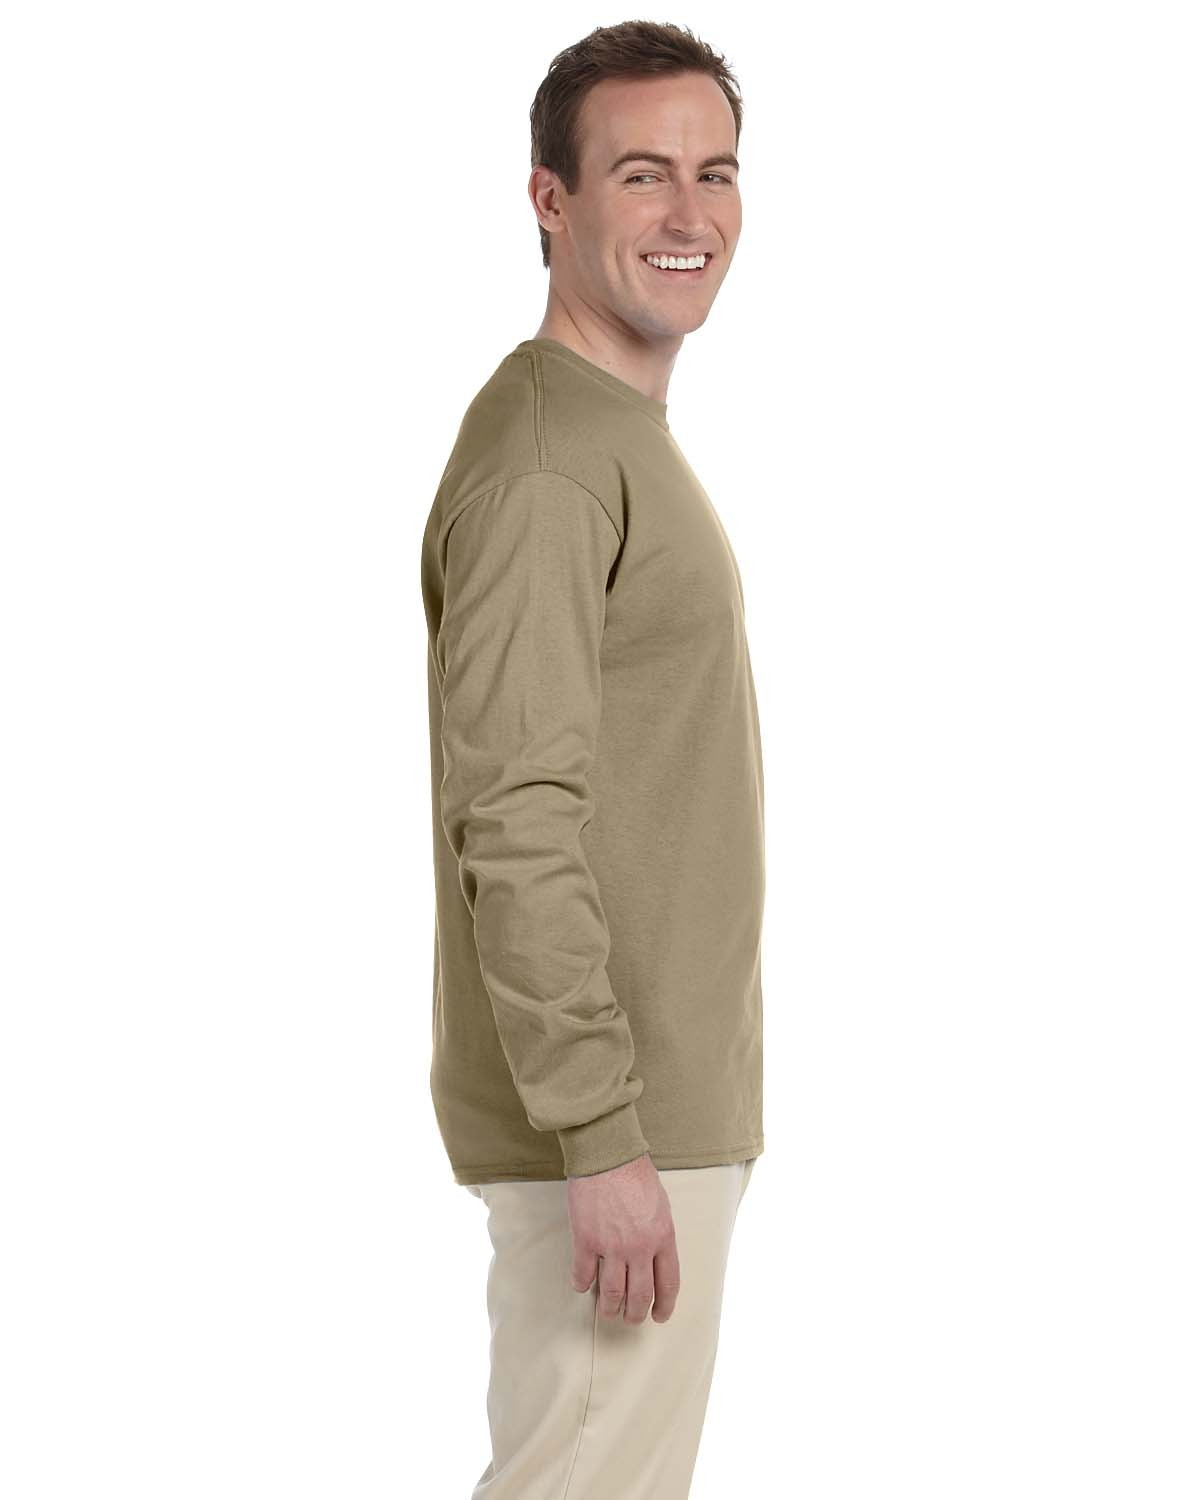 4930 Fruit of the Loom KHAKI